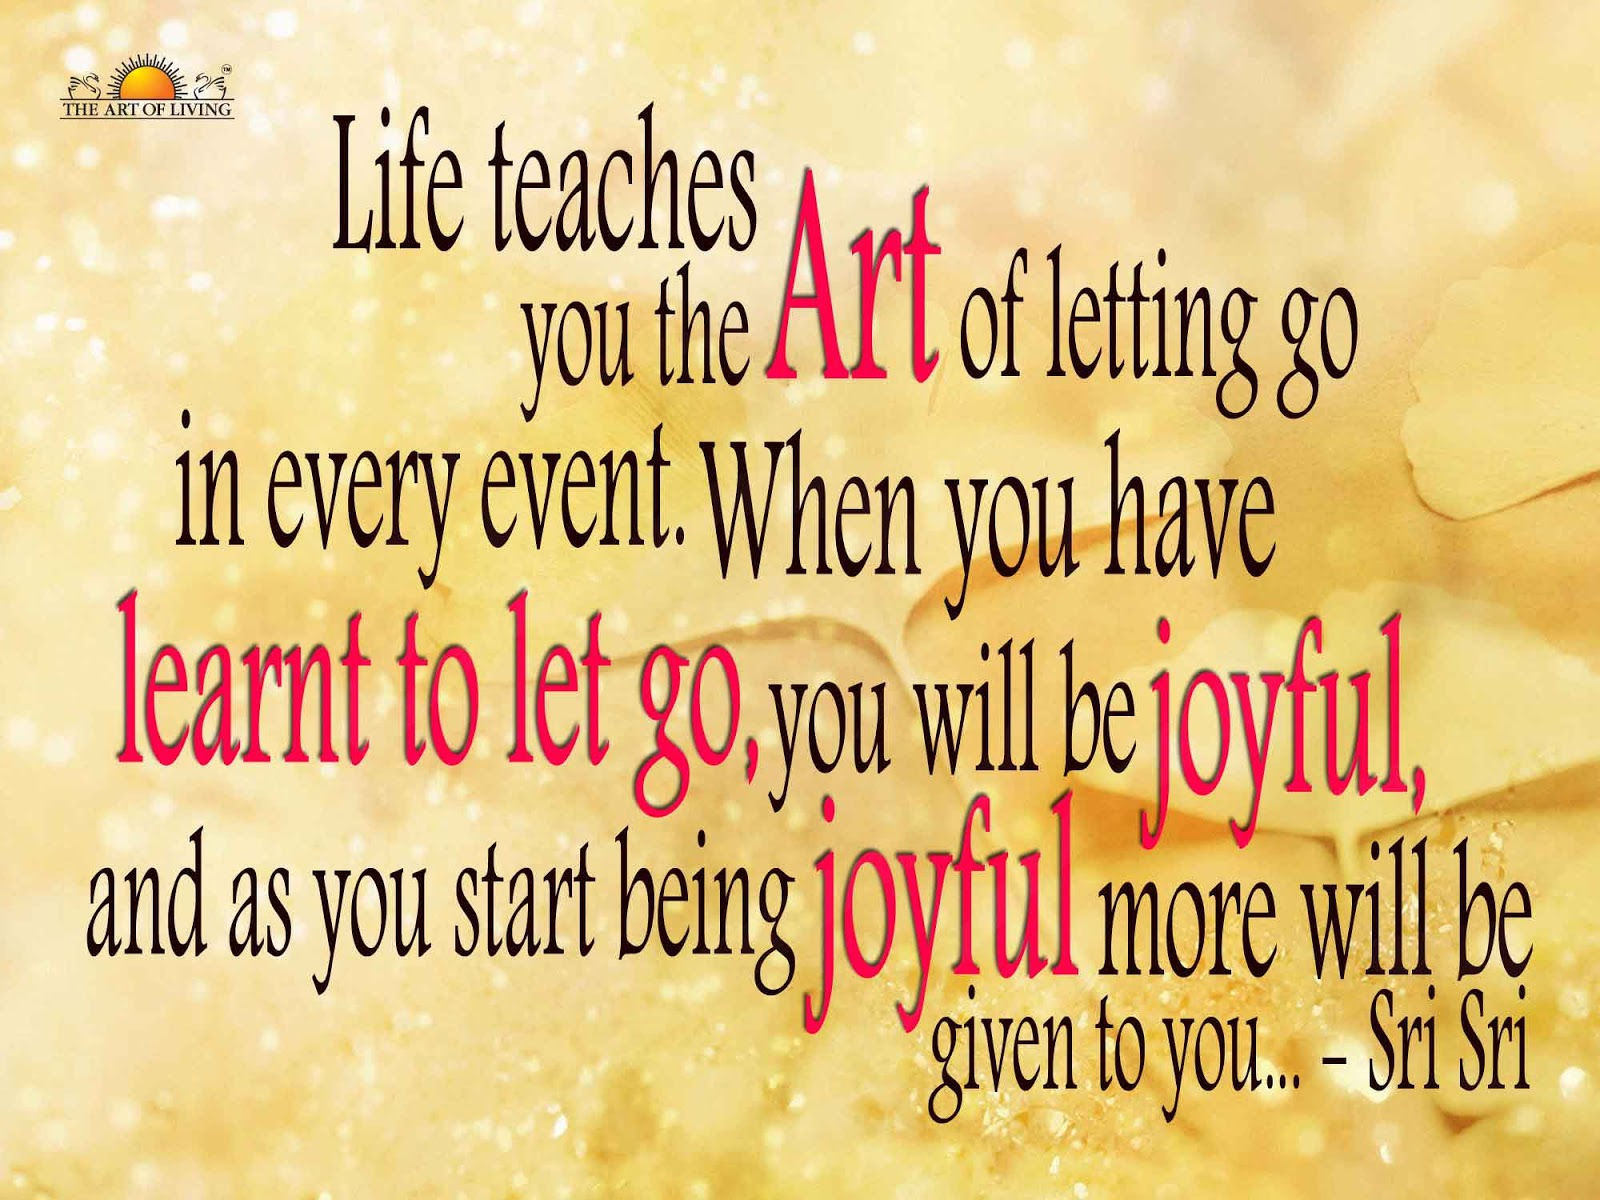 Quotes About Moving On In Life Quotessri Sri Ravi Shankar Quotes On Letting Go & Moving About